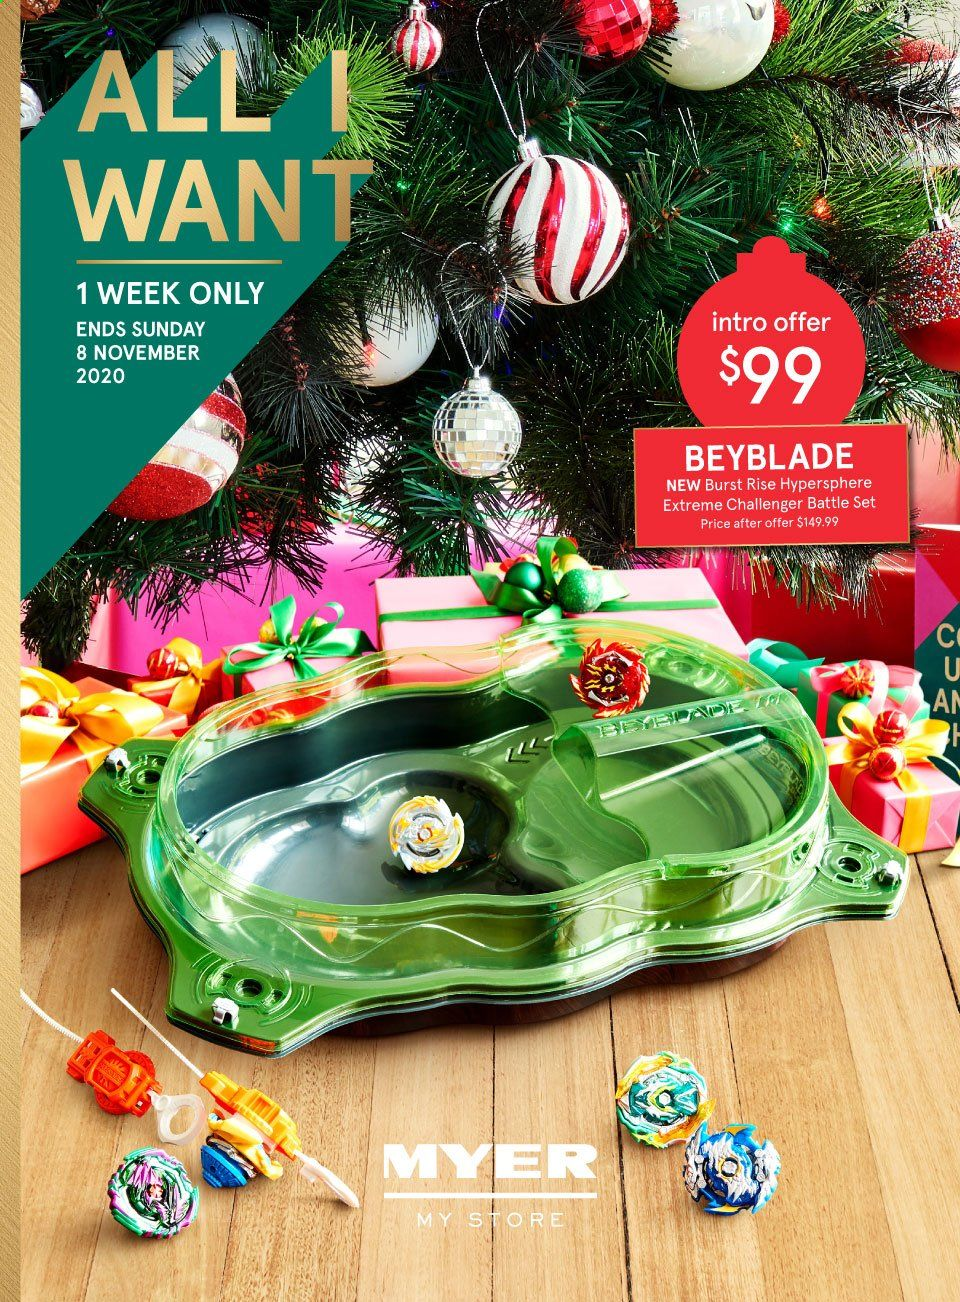 Myer Catalogue - 2.11.2020 - 8.11.2020 - Sales products - beyblade. Page 1.